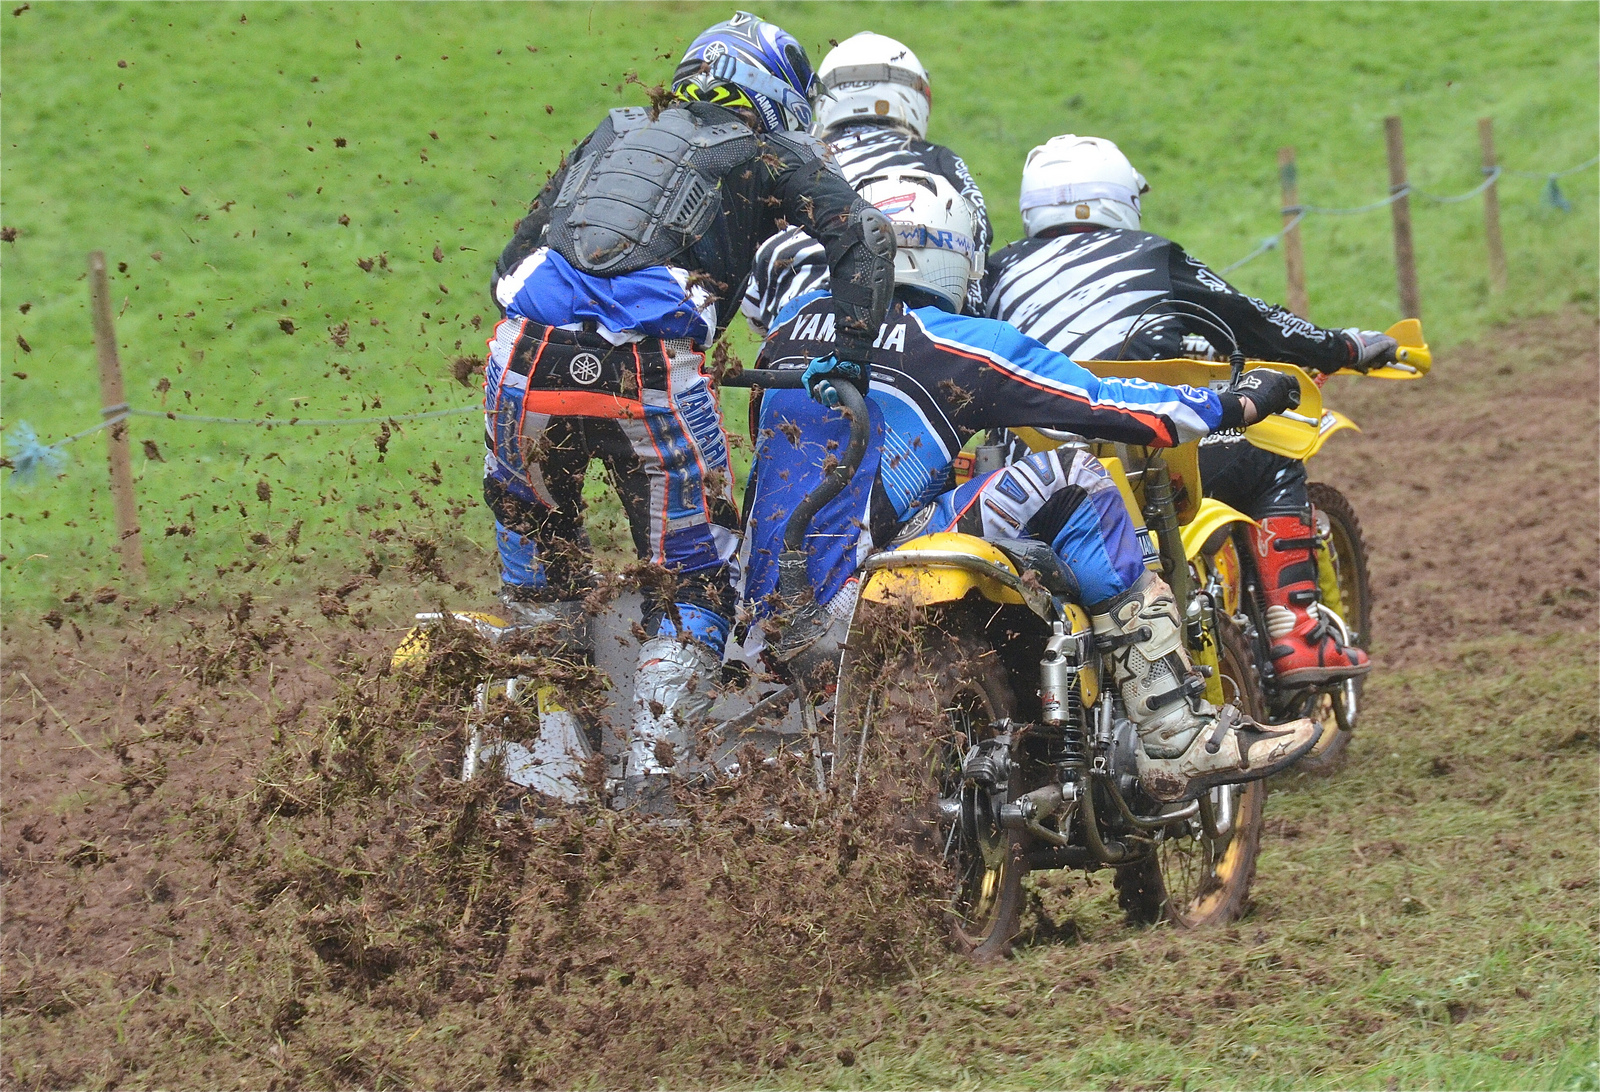 Llanthony Classic Scramble Photos September 2015 classicdirtbikerider.com..40